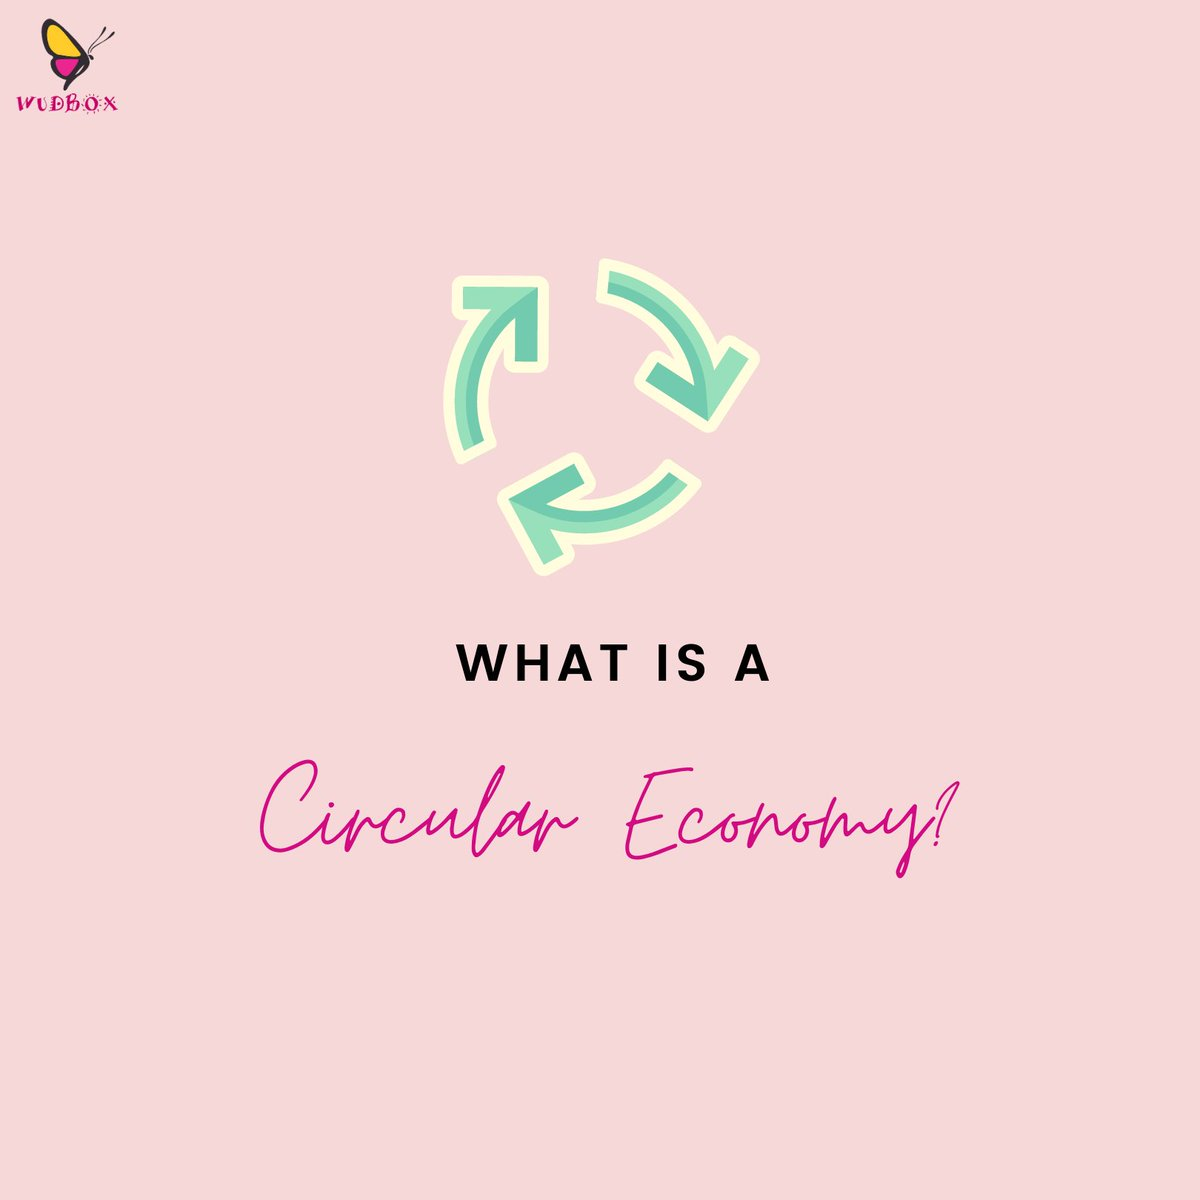 Would you prefer a circular economy? 😇 . #circulareconomy #economy #Consumerism #mindful #mindfulconsumer #mindfulconsumption #consciousness #sustainableliving #sustainability #switchtosustainability #ethicalfashion #slowfashion #abetterworld #sustainabilitymatters #supportlocal https://t.co/0K9aiu7YLg